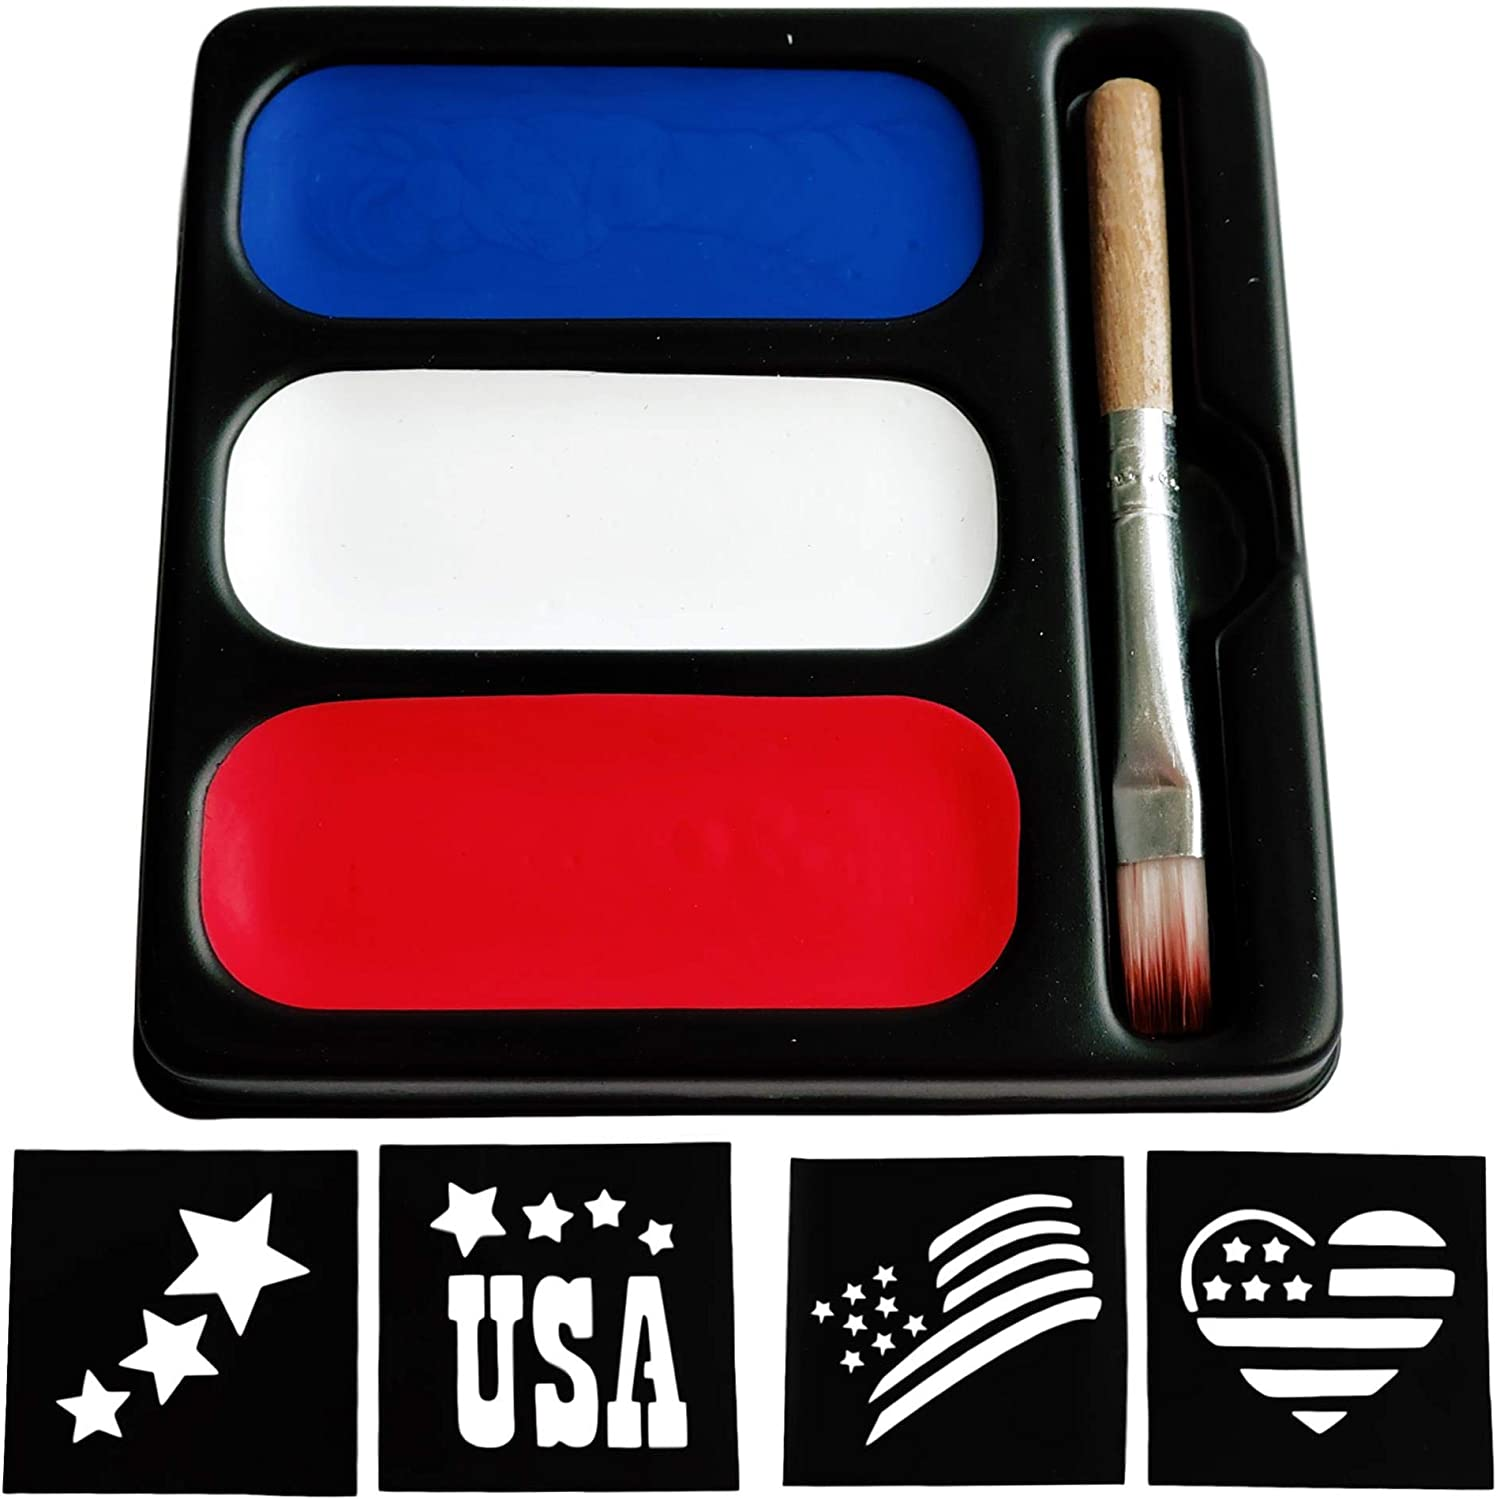 USA Colors Face Paint Palette - Blue Red & White Makeup (3 Paints, Brush & Stencils) Painting Kit For America's Patriotic Events 4th of July, Independence Day, Veterans Day, Presidents Day - Non-Toxic